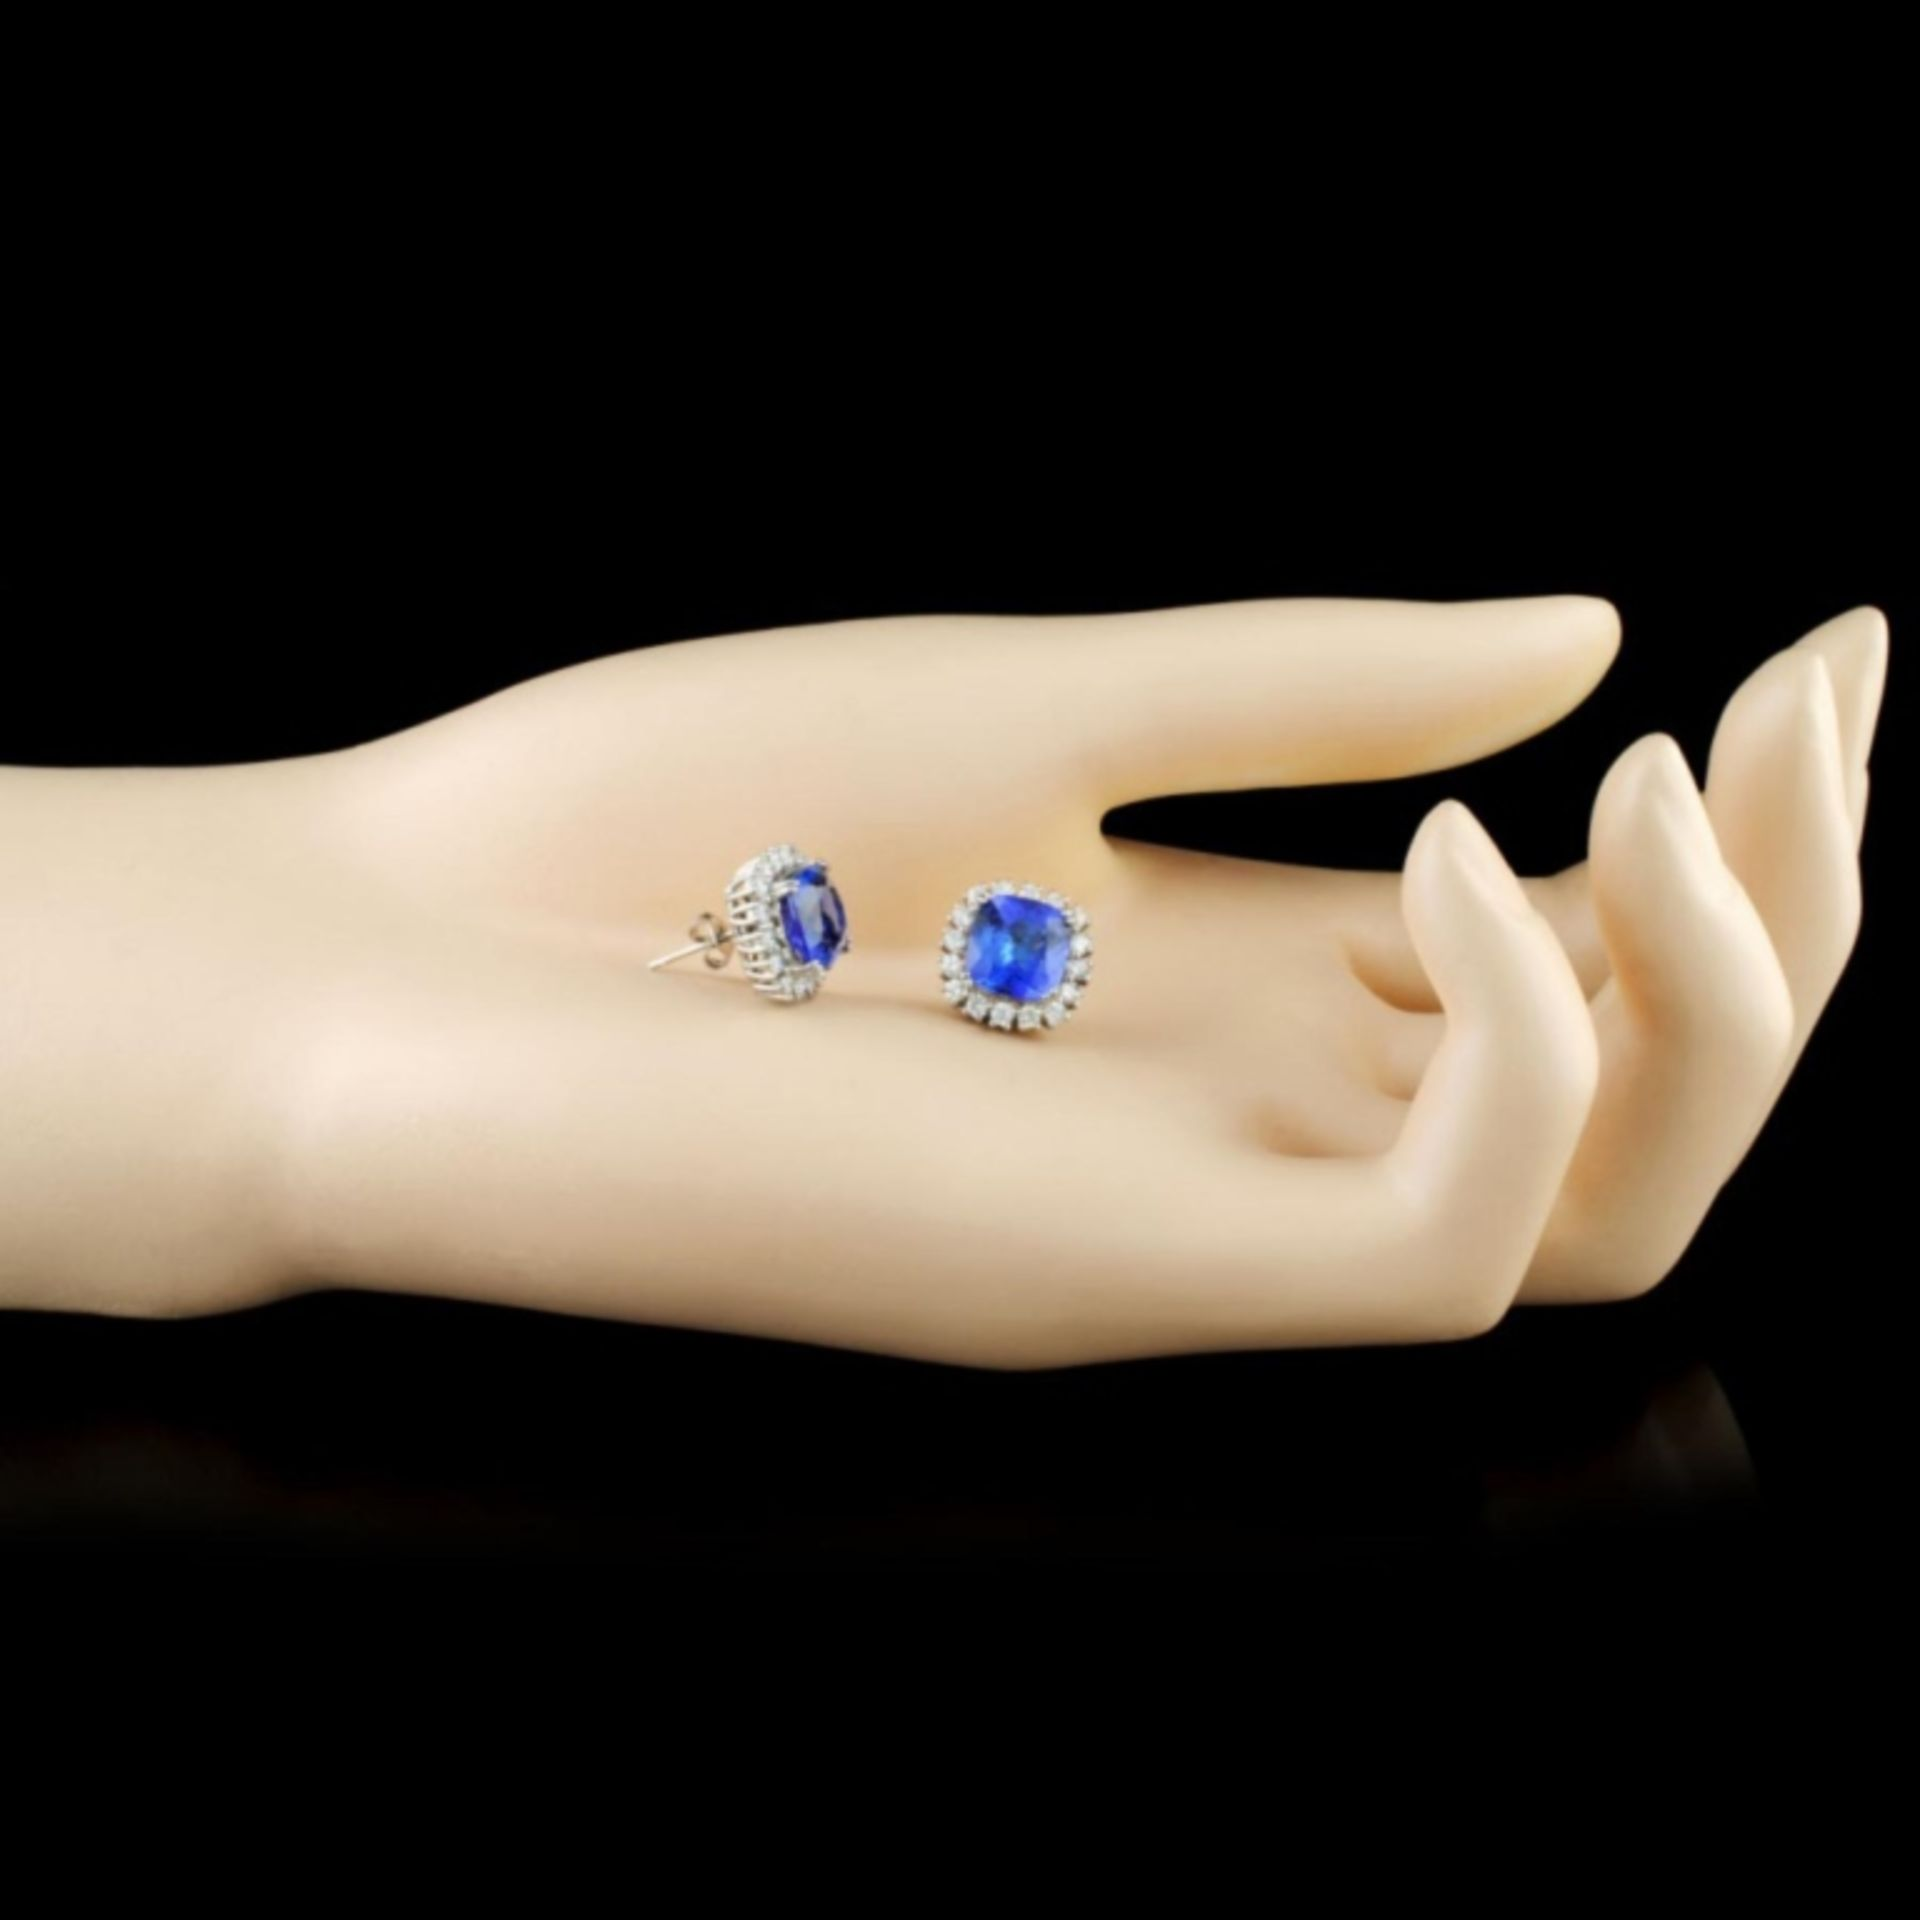 14K Gold 5.54ct Tanzanite & 1.08ctw Diamond Earrin - Image 2 of 3